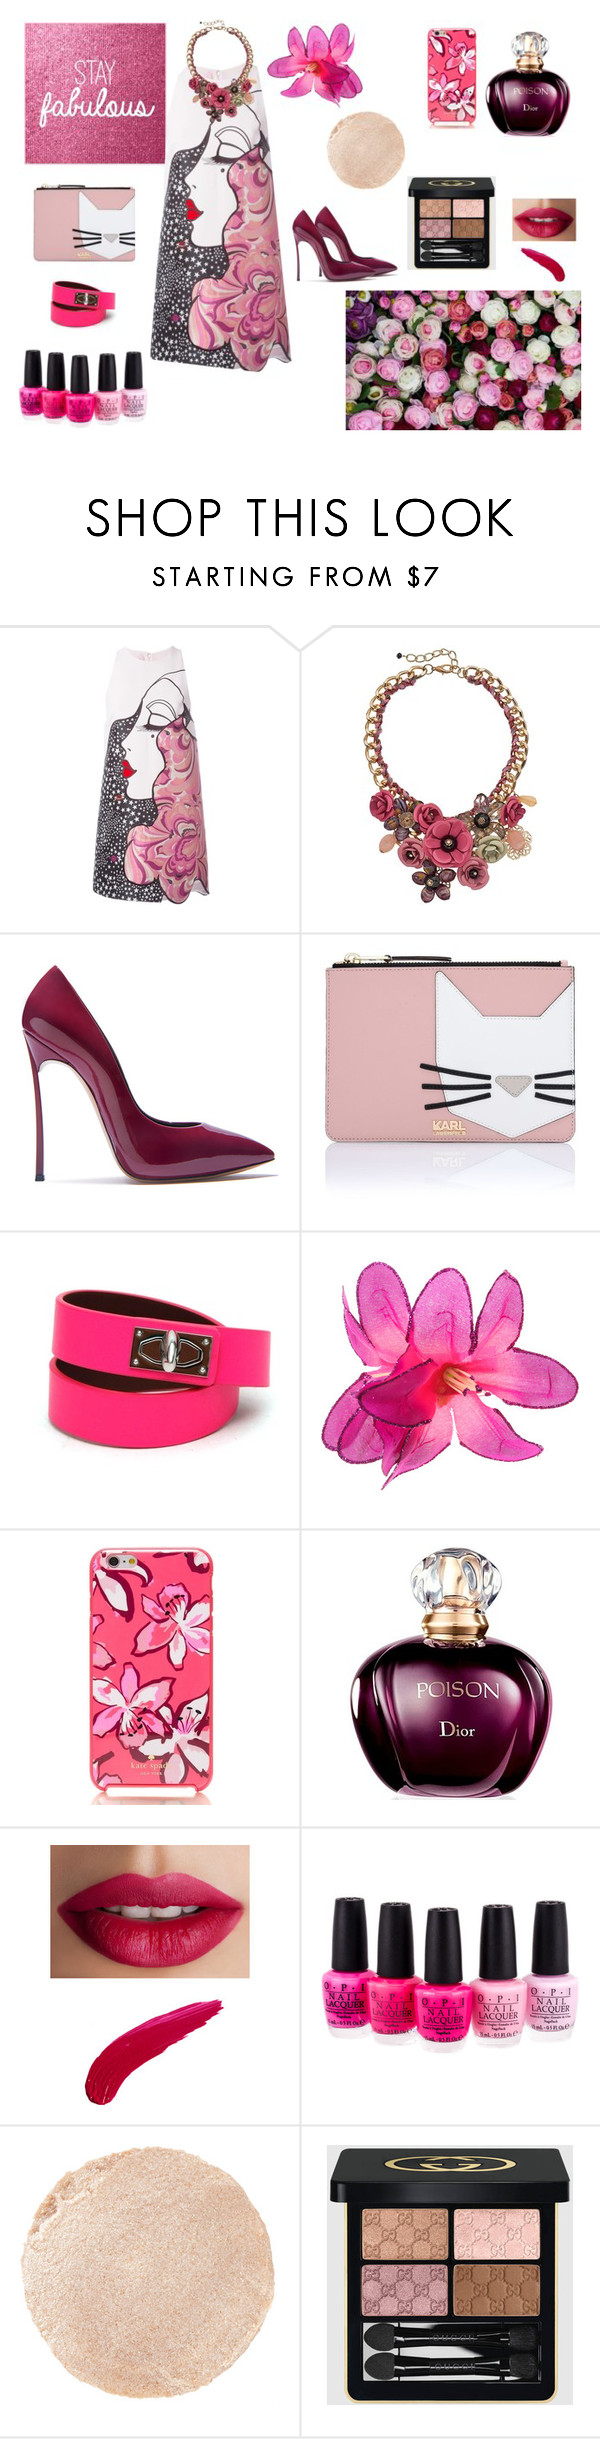 """""""Stay fabulous"""" by maria-tamarindo on Polyvore featuring Giamba, Loli Bijoux, Casadei, Karl Lagerfeld, Givenchy, Kate Spade, TheBalm, OPI, Wander Beauty and Gucci"""